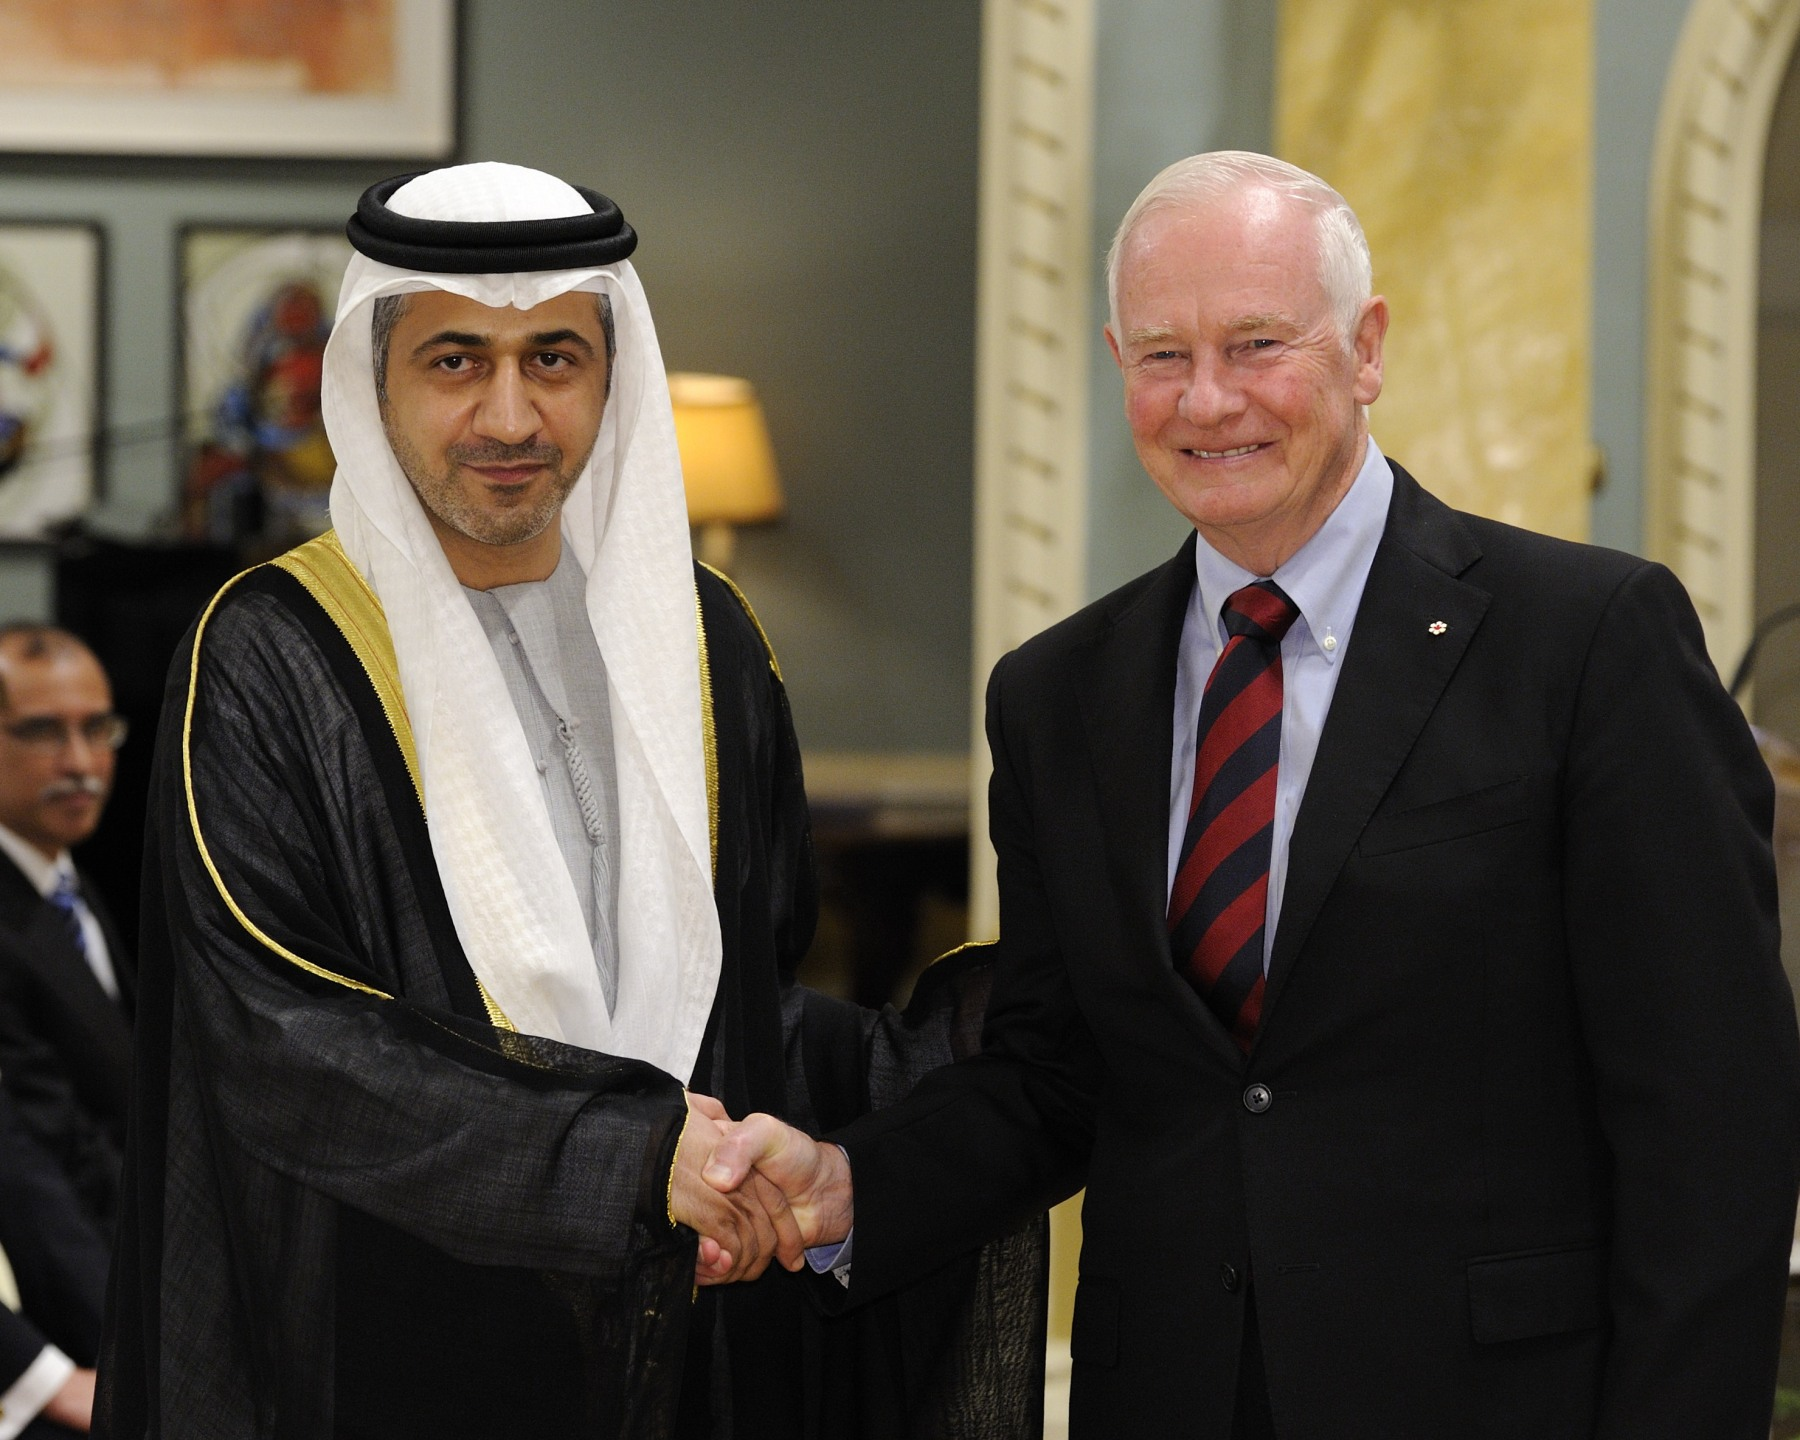 The Governor General received the credentials of His Excellency Mohammed Saif Helal AlShehhi, Ambassador of the United Arab Emirates.